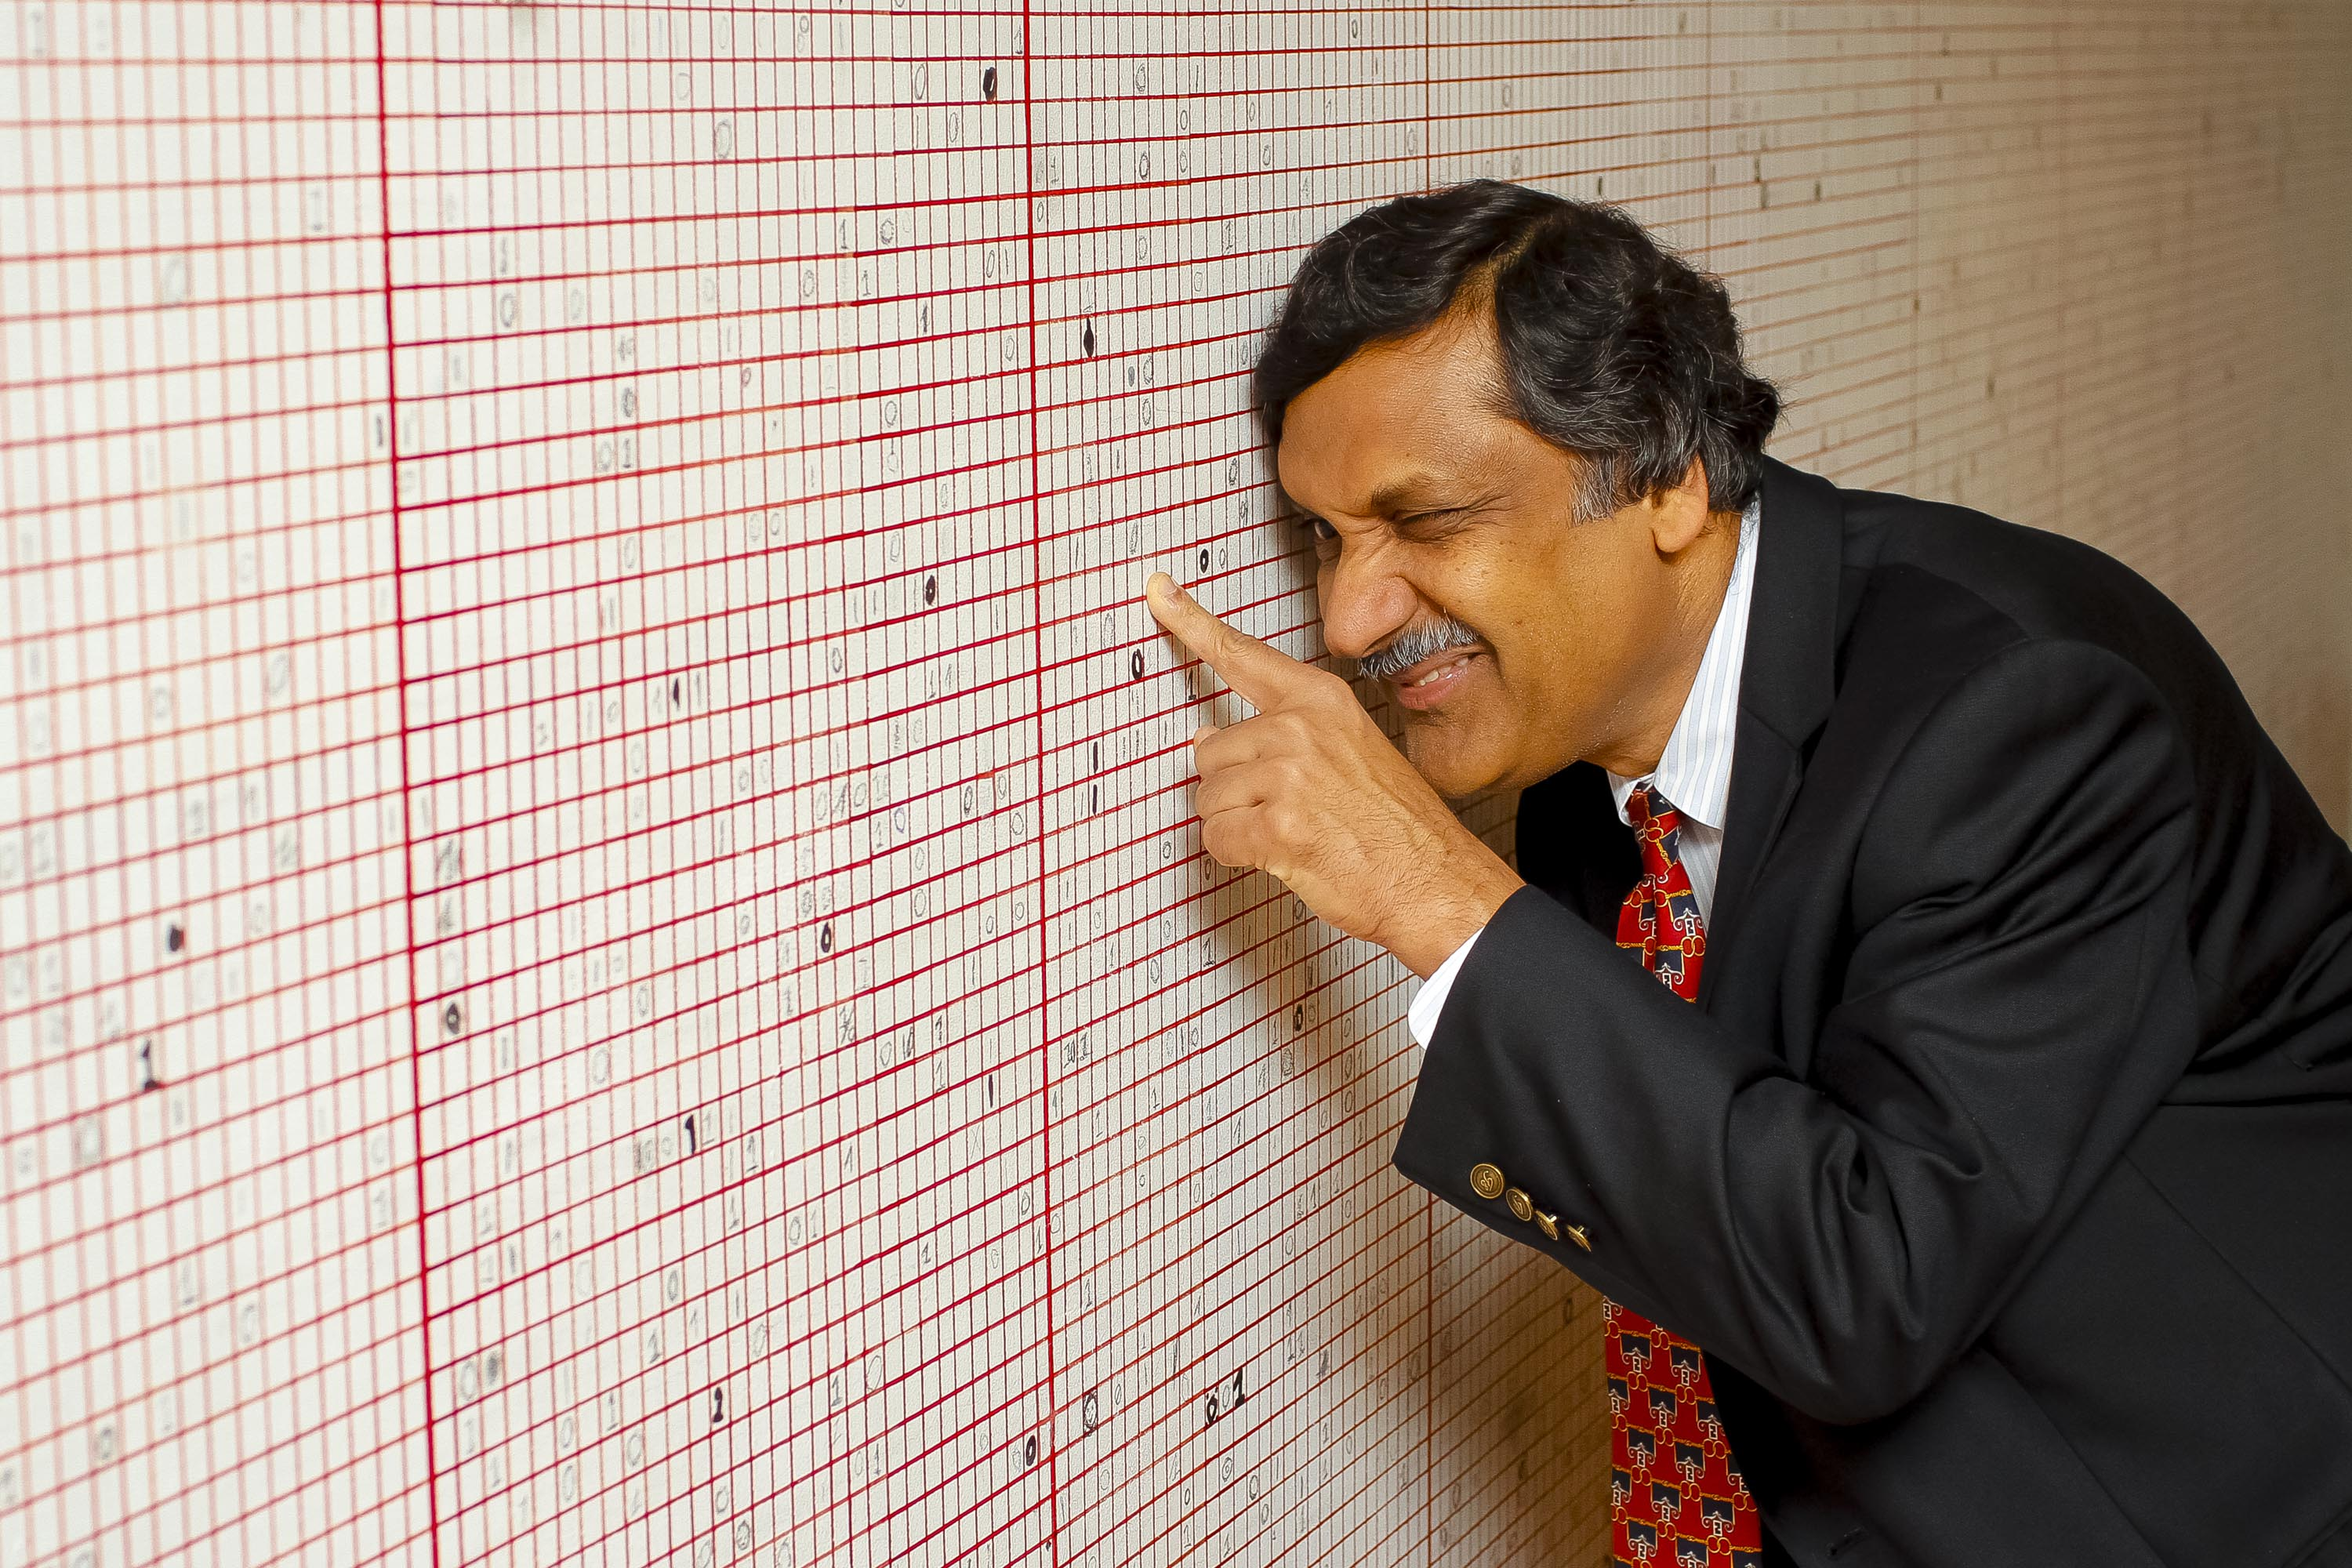 Professor Anant Agarwal, CEO of EdX, adds his mark to the Live Statistics Wall at the Glucksman Gallery.